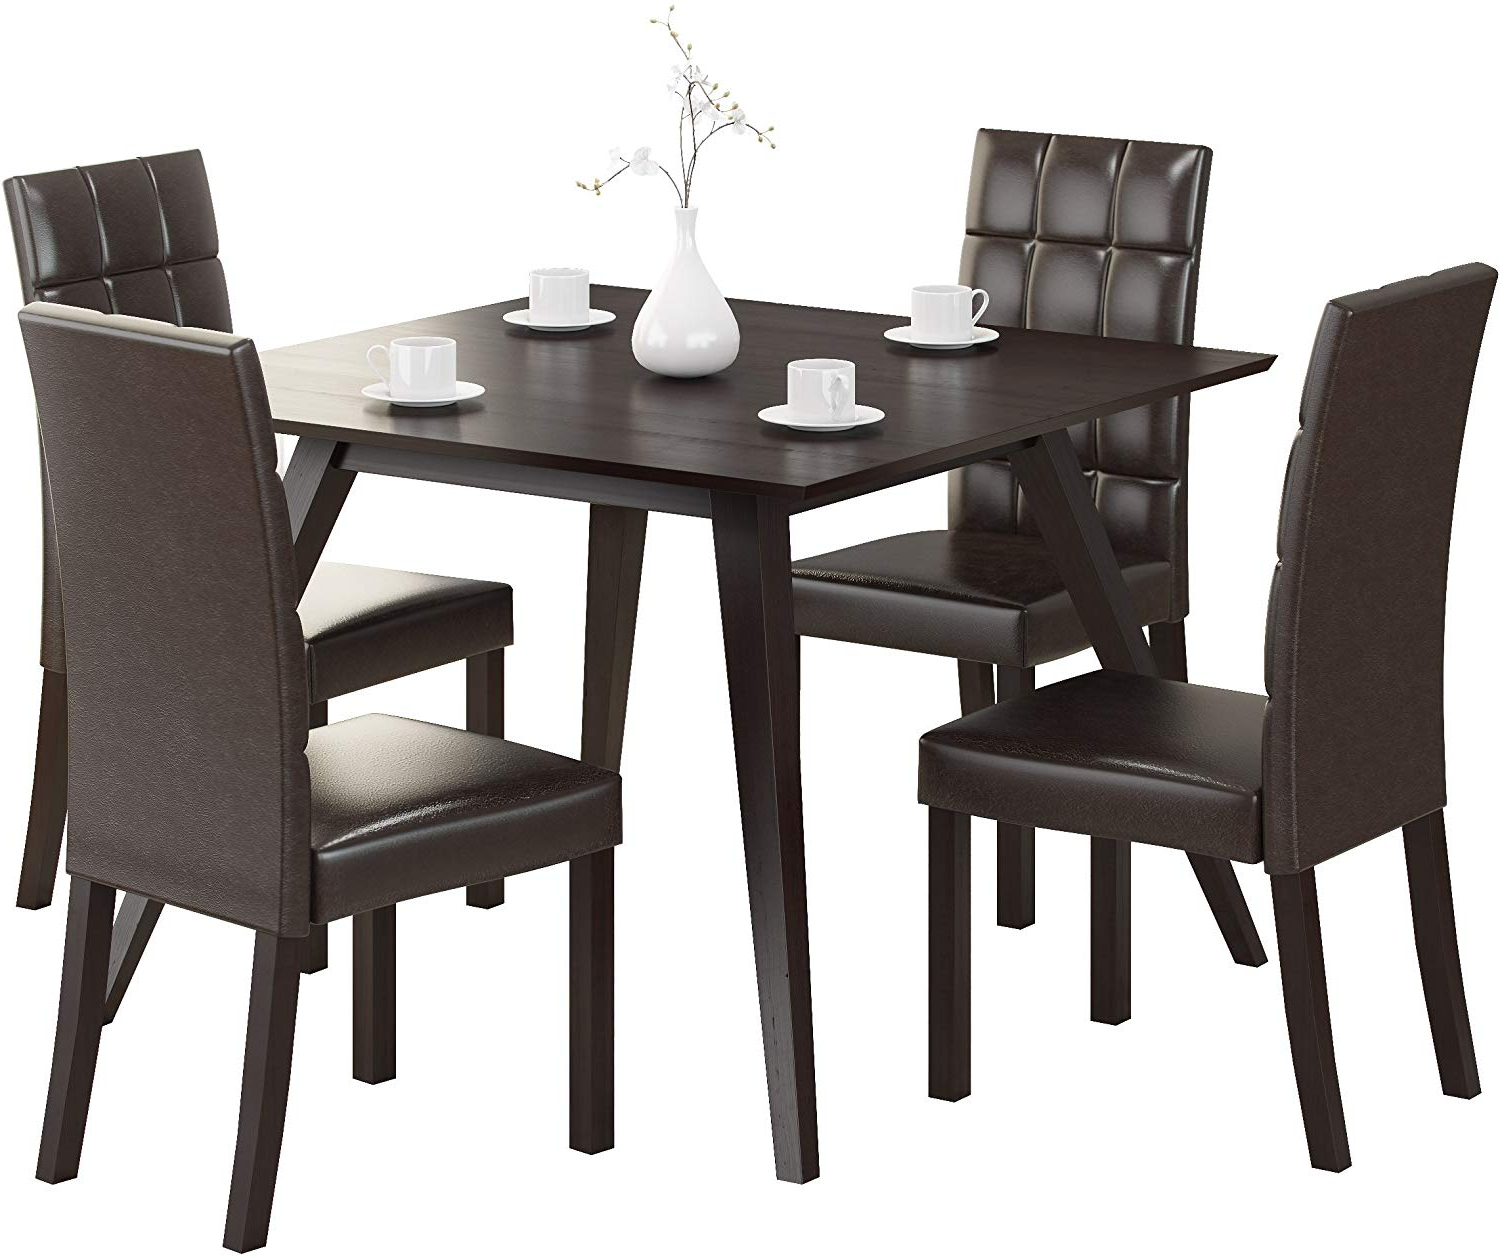 Corliving Atwood Dining Set, Dark Brown Throughout Best And Newest Atwood Transitional Rectangular Dining Tables (View 3 of 25)